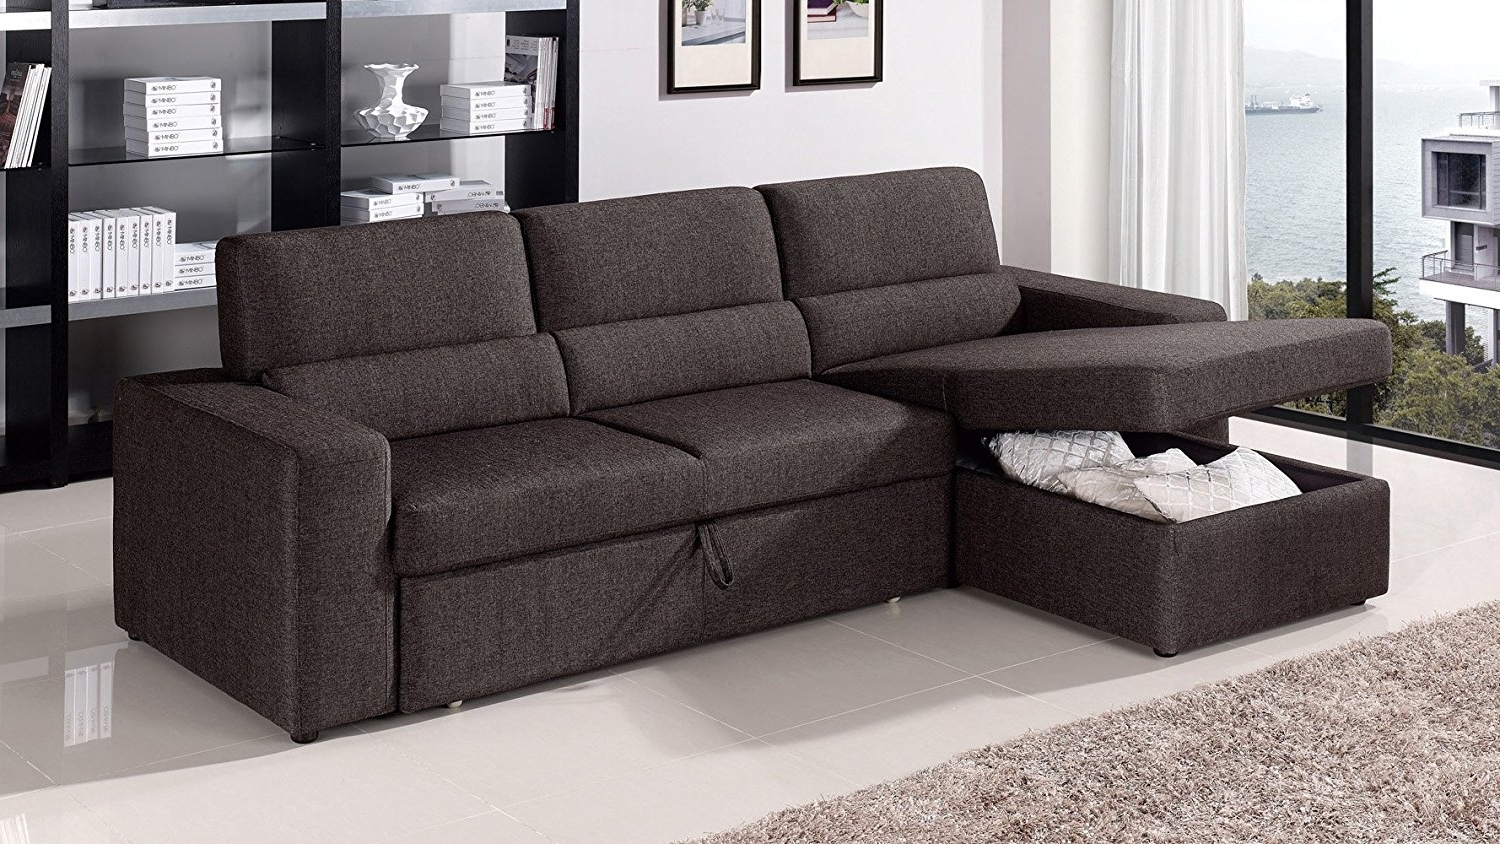 Sleeper Chaises In Newest Amazon: Black/brown Clubber Sleeper Sectional Sofa – Left (View 13 of 15)